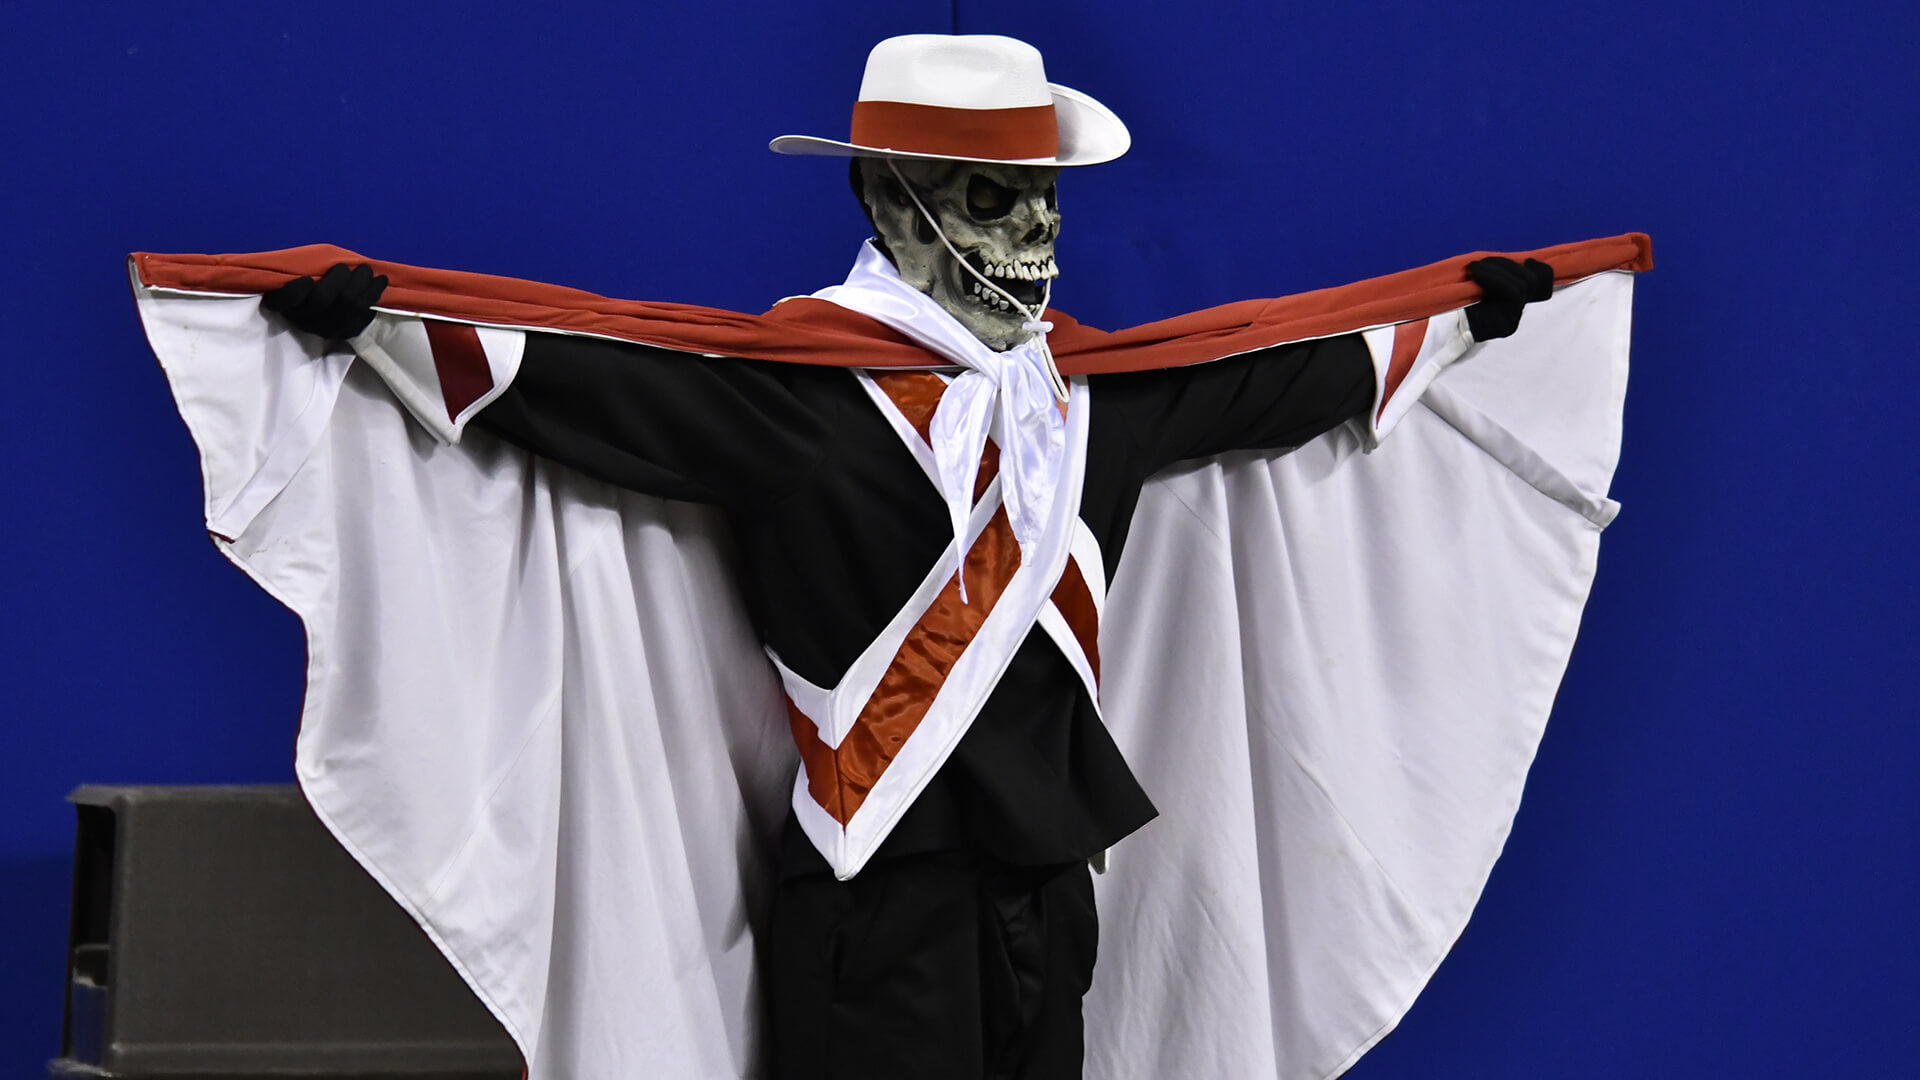 These homemade drum corps costumes win Halloween